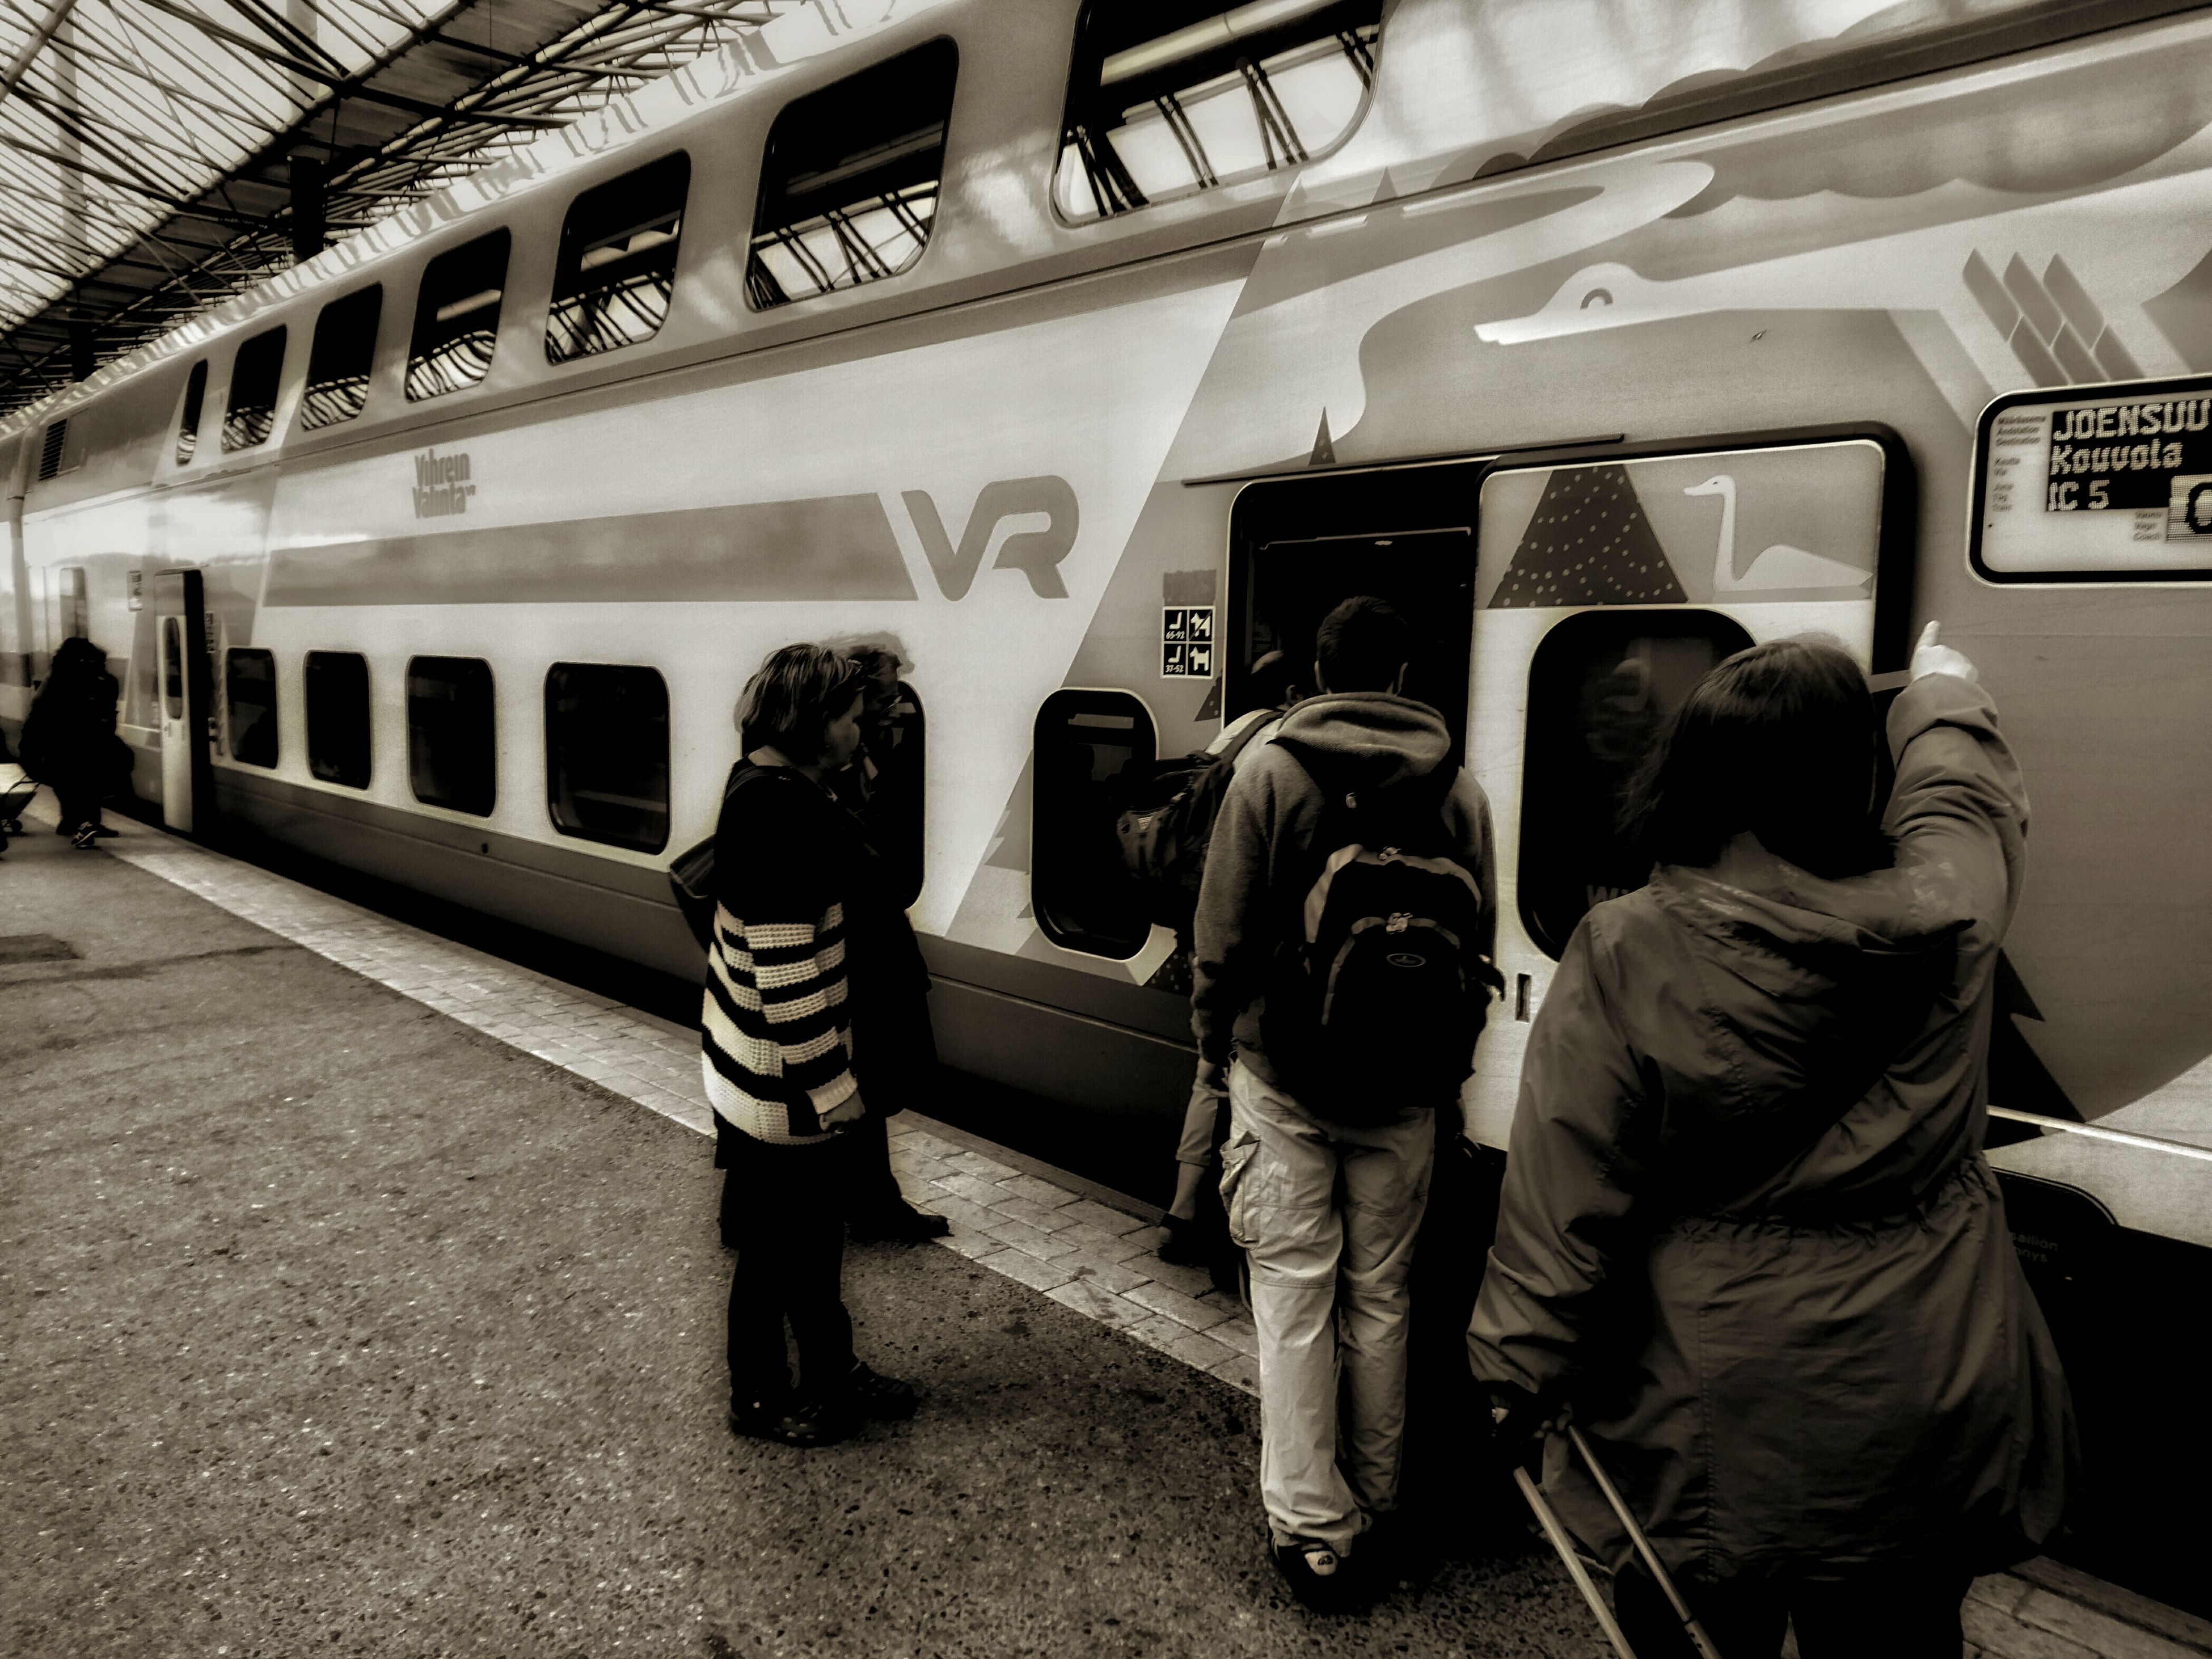 transportation, travel, public transportation, mode of transport, train - vehicle, passenger, subway train, men, adults only, only men, indoors, adult, people, day